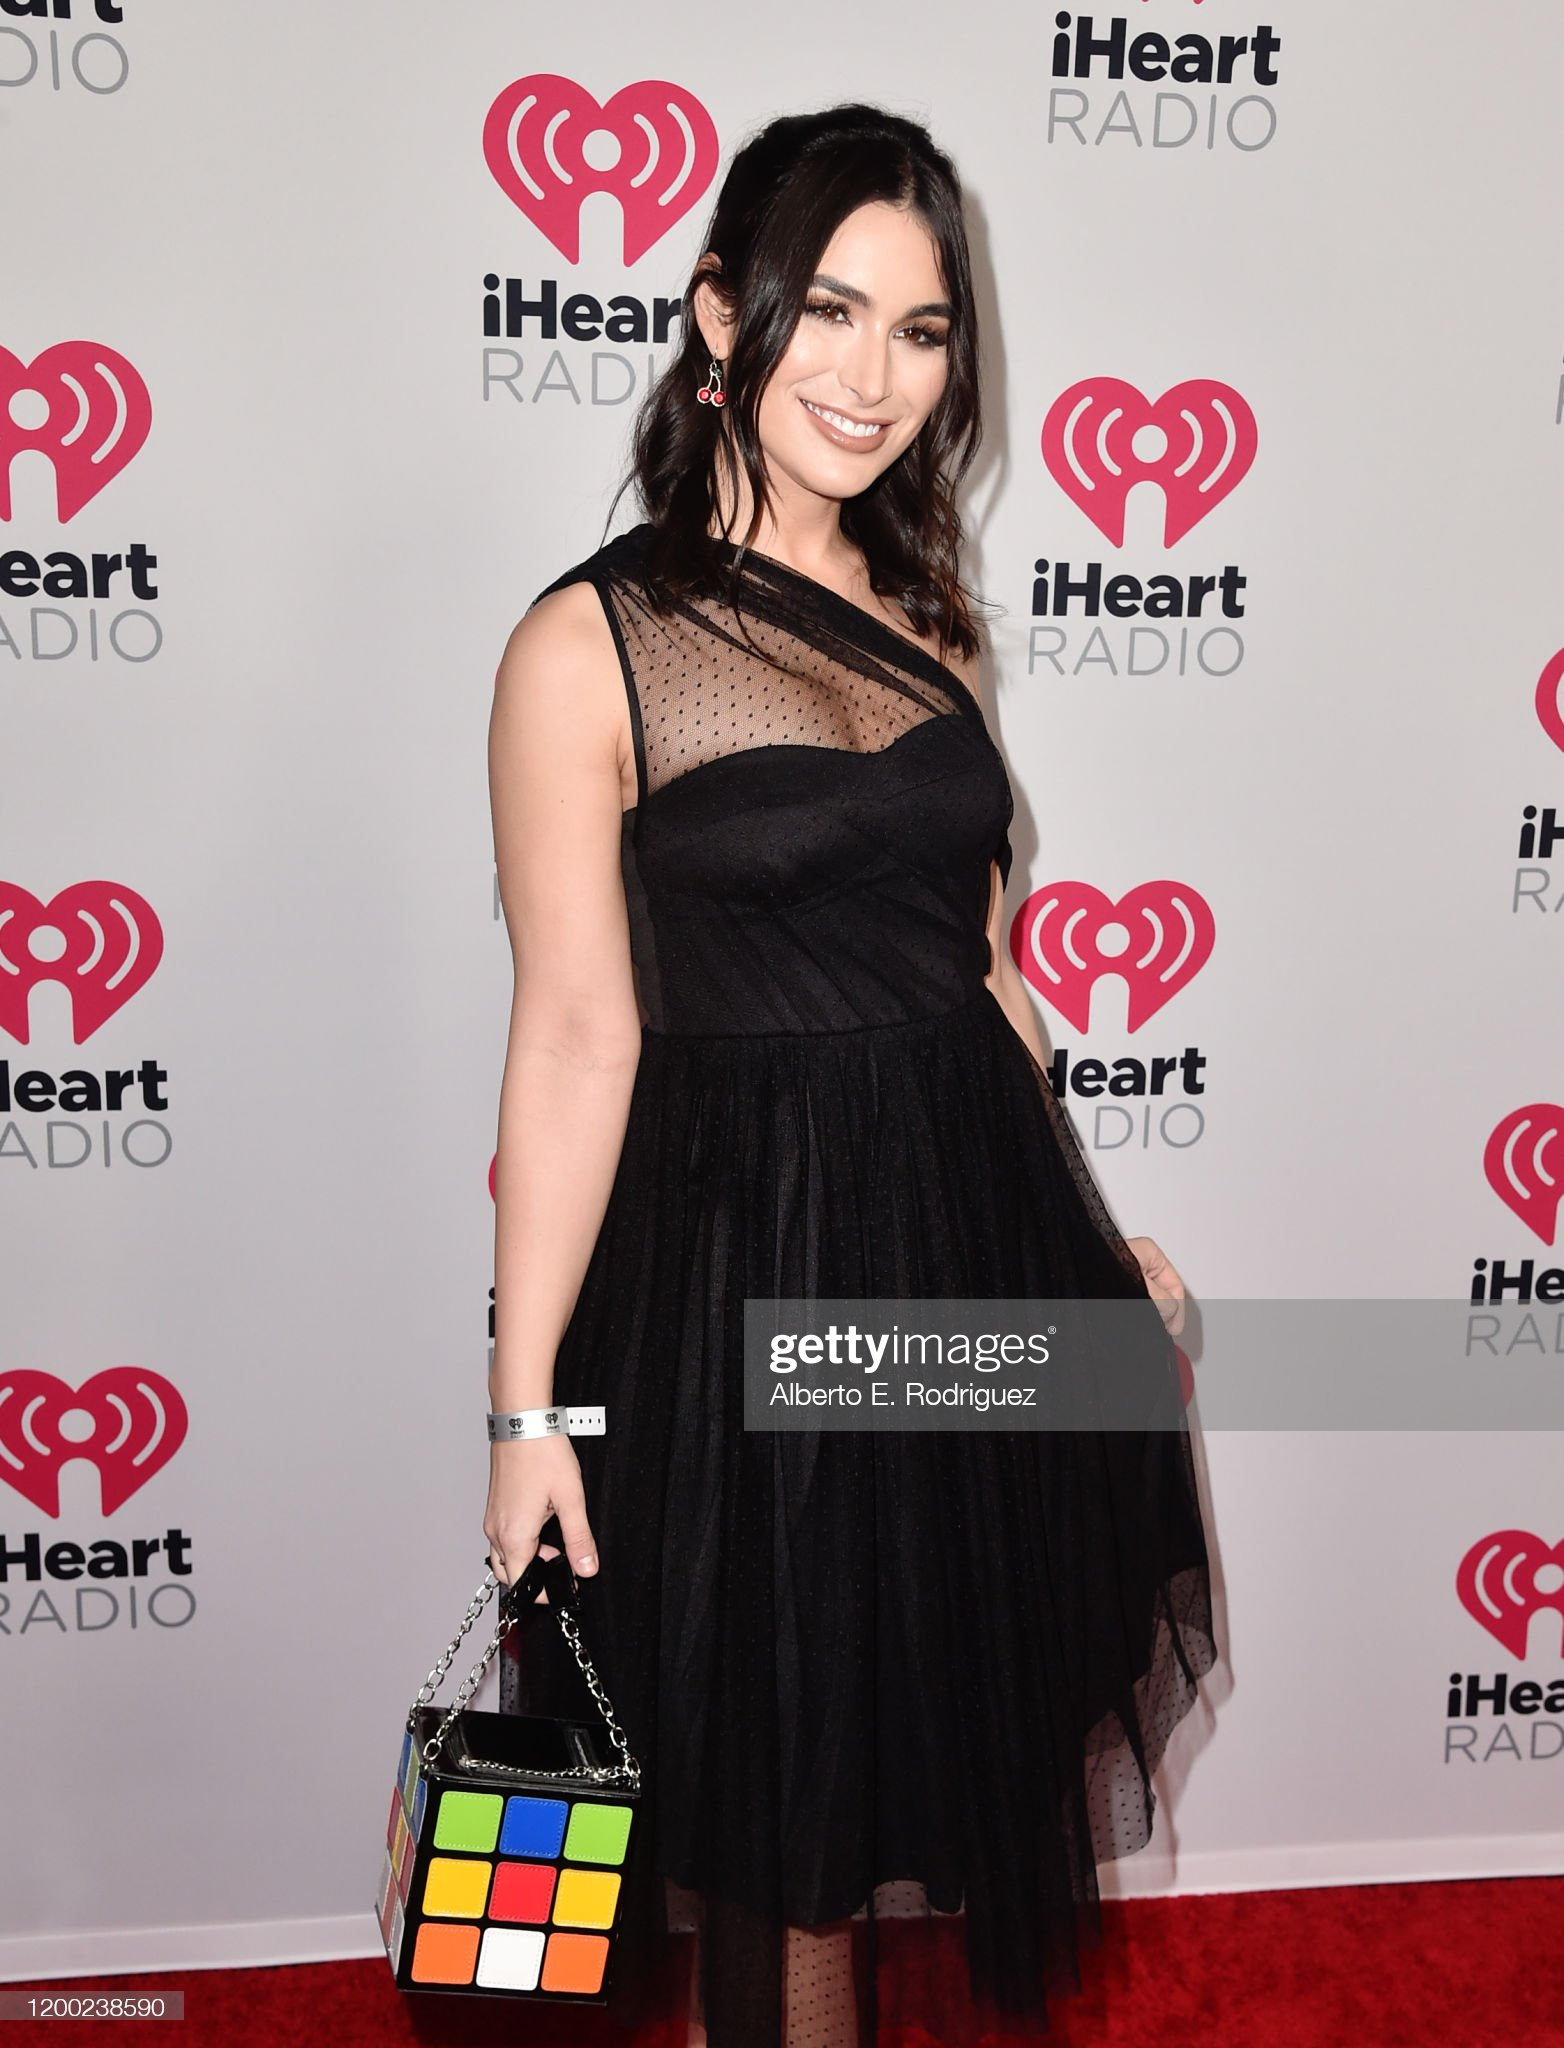 Ashley Iaconetti Haibon & Jared Haibon - Discussion - Page 62 Ashley-iaconetti-haibon-attends-the-2020-iheartradio-podcast-awards-picture-id1200238590?s=2048x2048